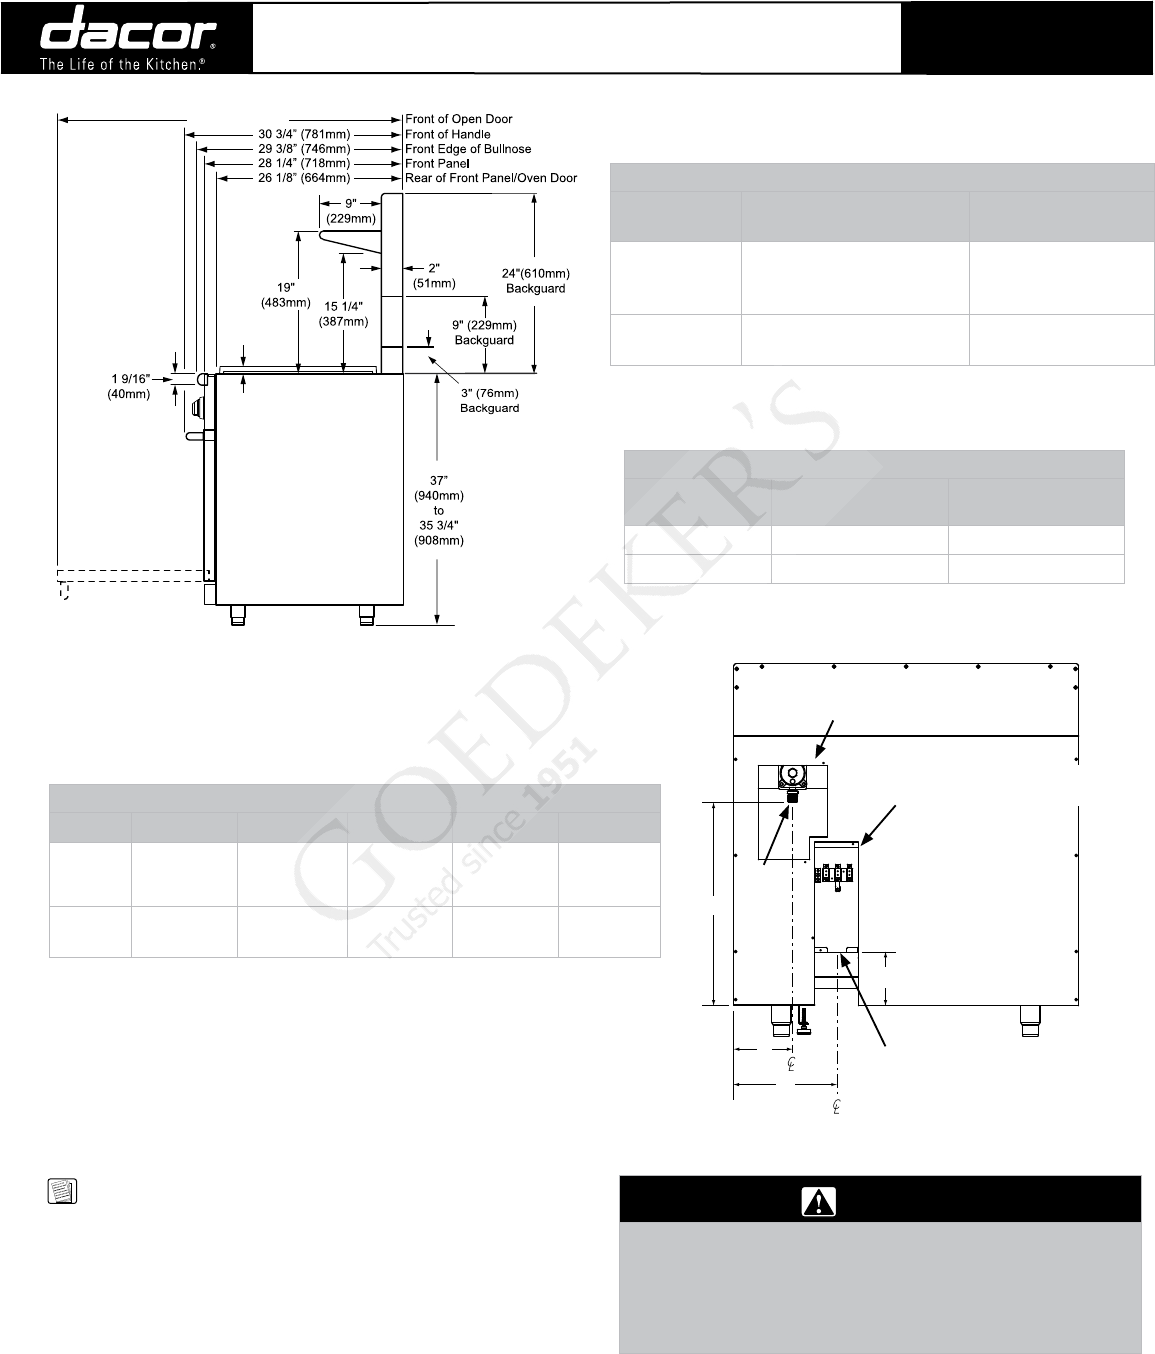 Dacor Cooktop Er48d Users Manual Range Wiring Diagram